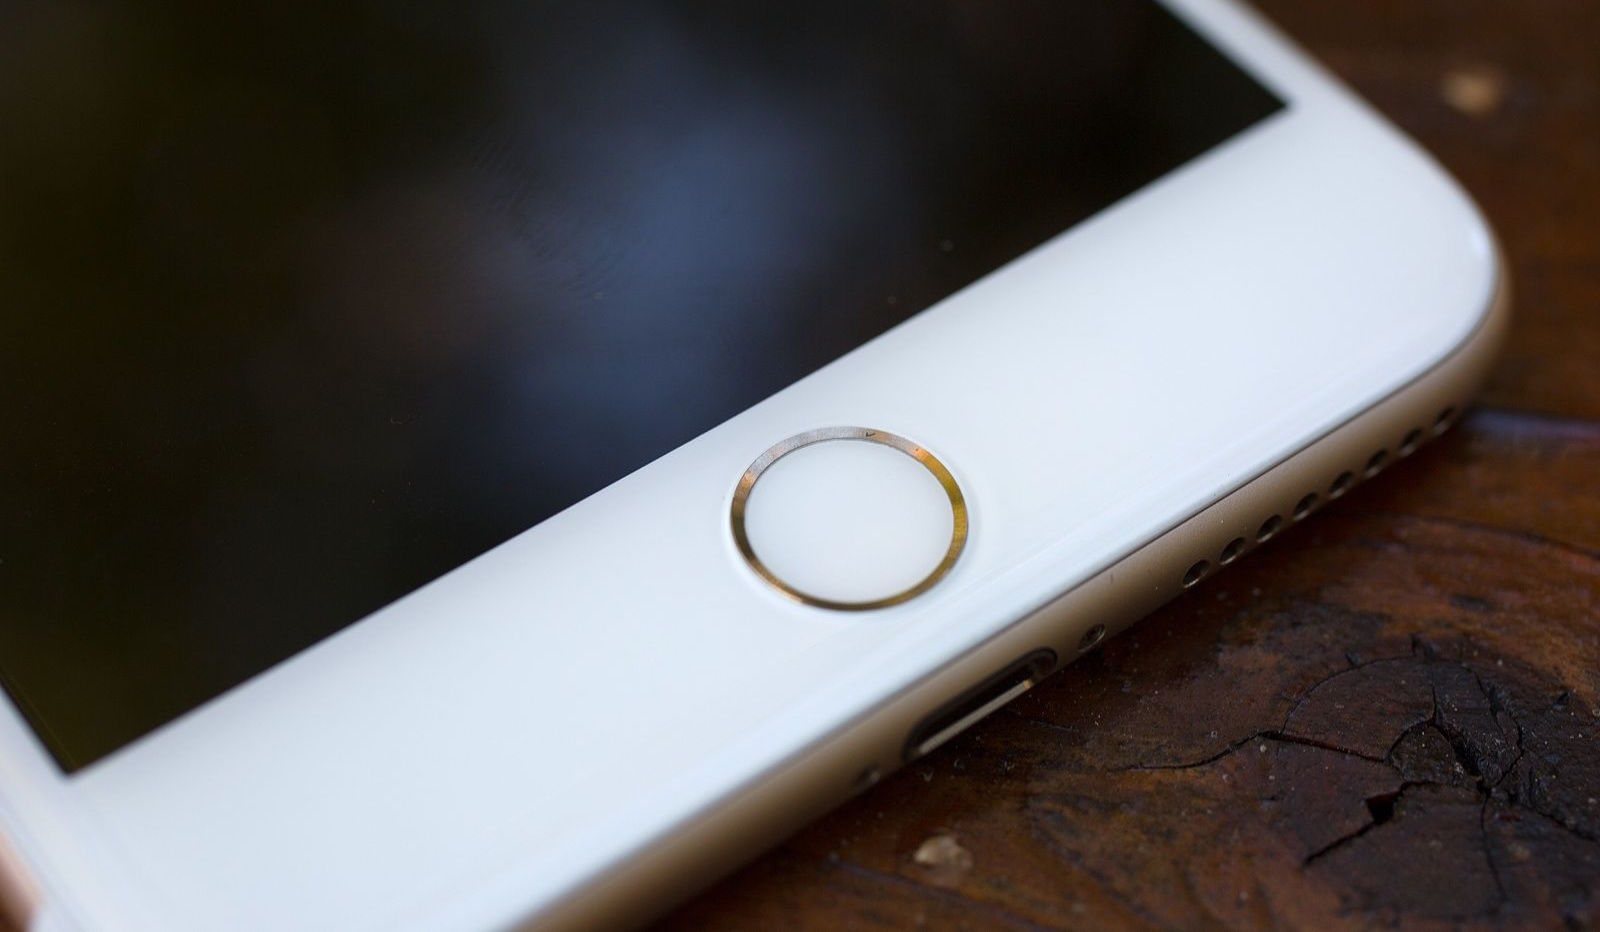 How to solve problem with Touch ID in iOS 9.3.1